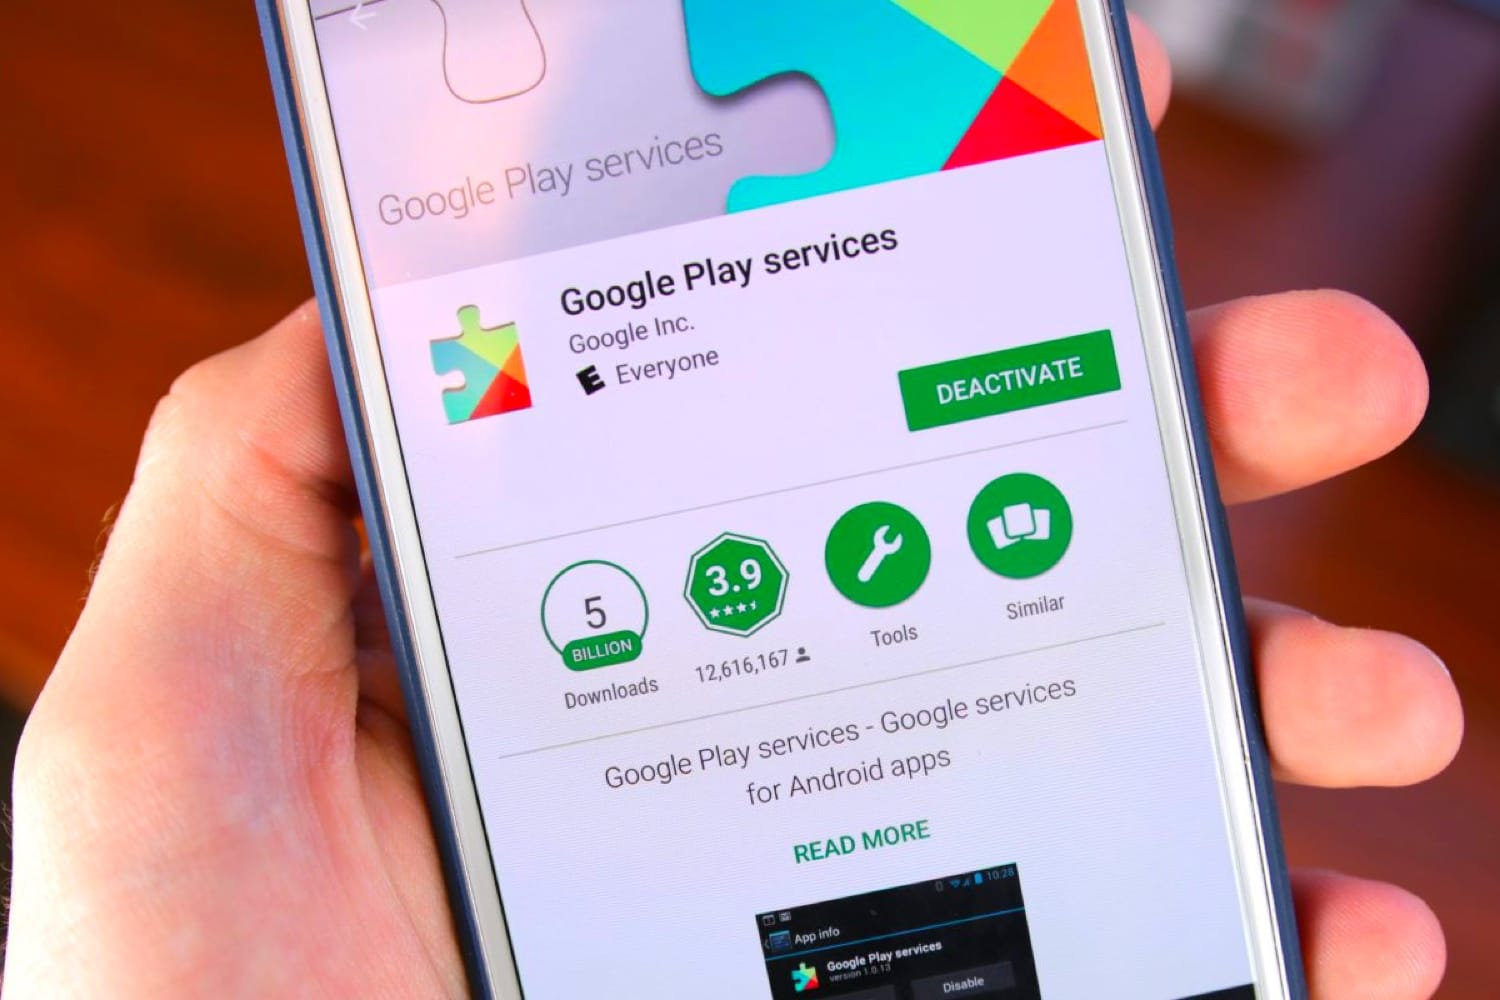 Google bans 8 'deceptive' crypto apps from Play Store